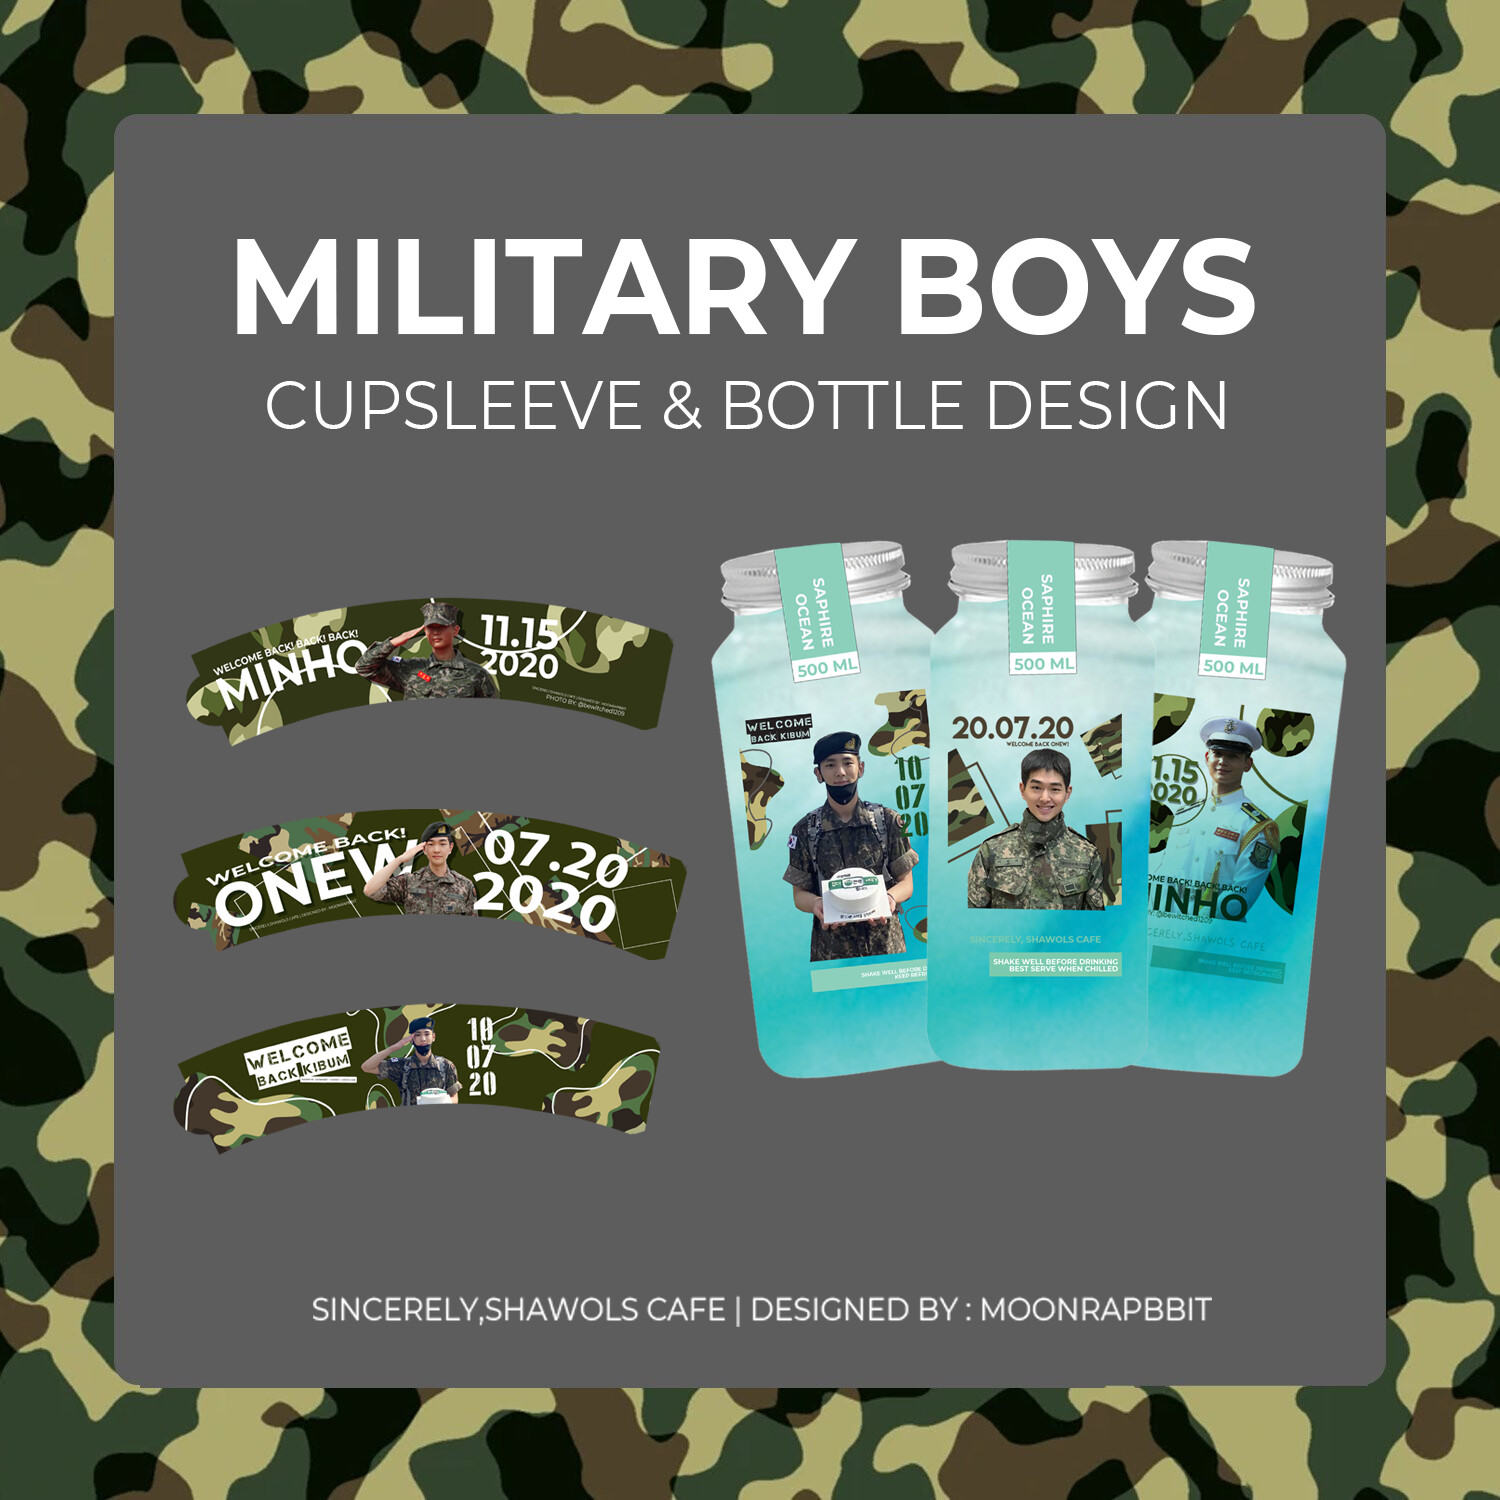 MILITARY BOYS WELCOME BACK CUPSLEEVE KIT